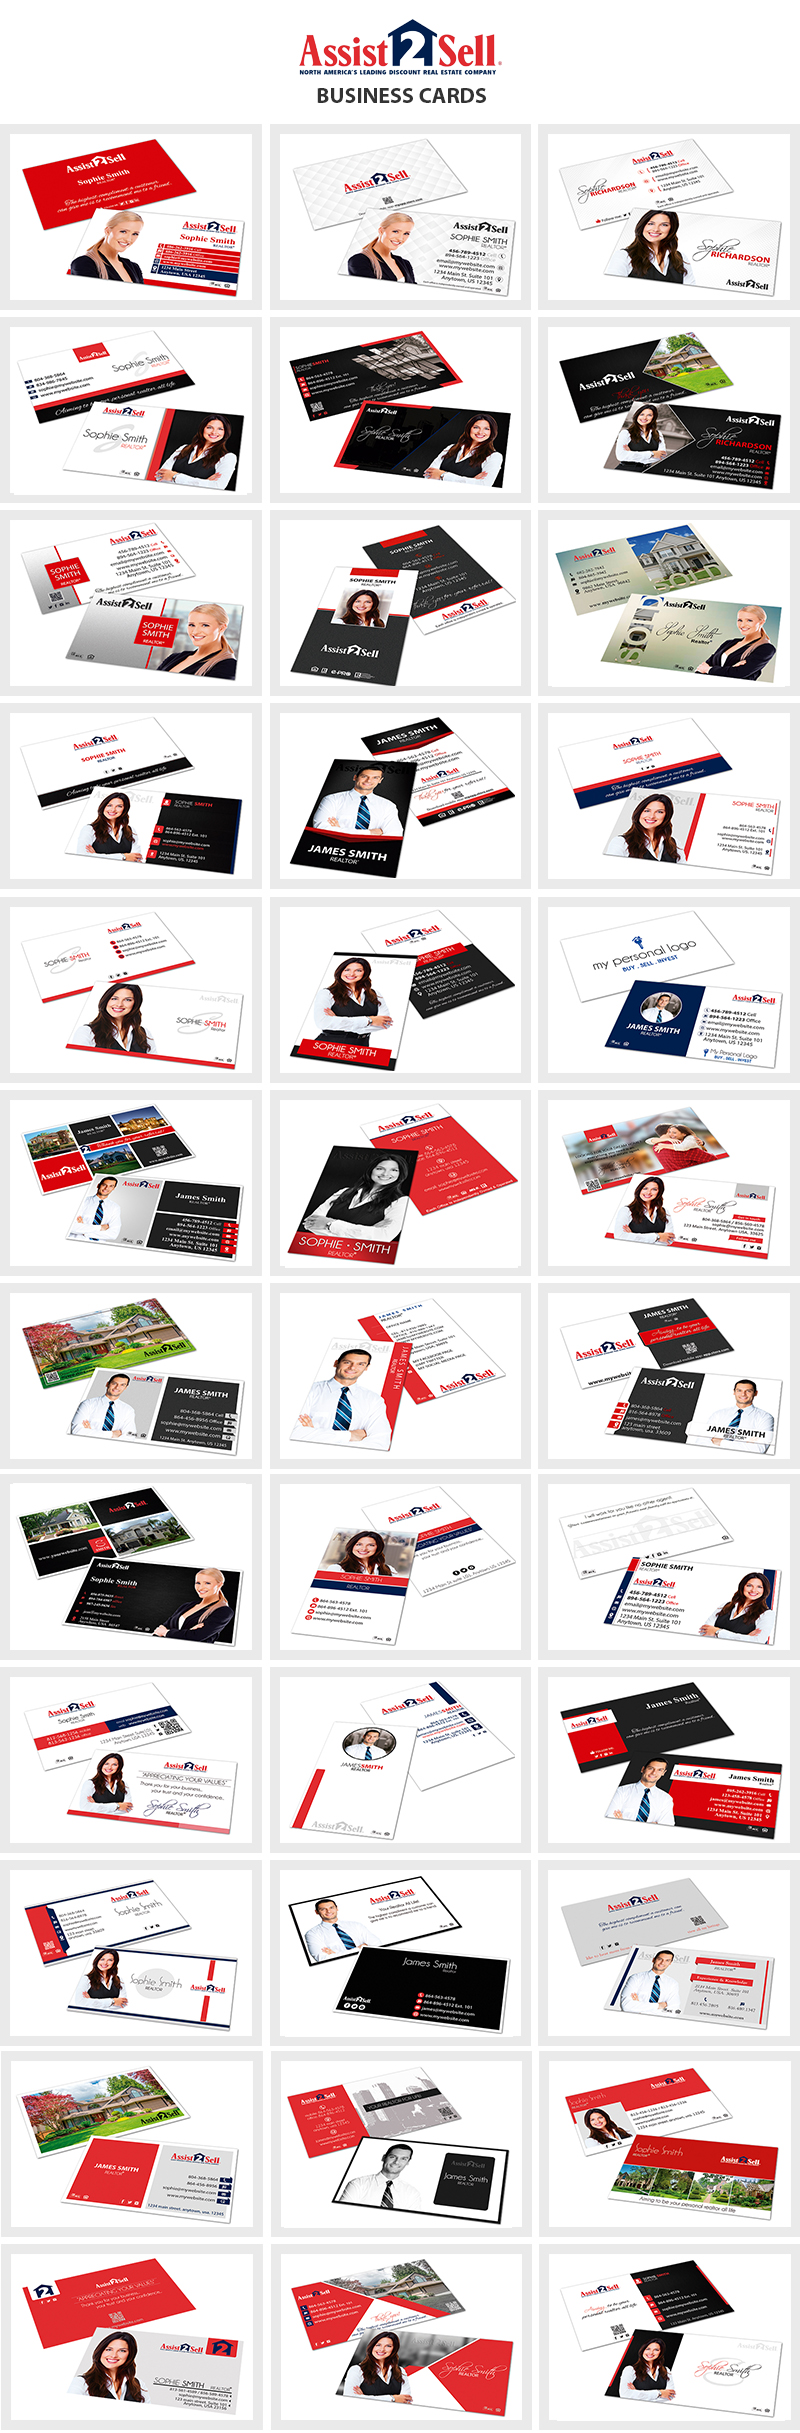 Assist-2-Sell Card Templates | Assist-2-Sell Cards, Modern Assist-2-Sell Cards, Assist-2-Sell Card Ideas, Assist-2-Sell Card Printing